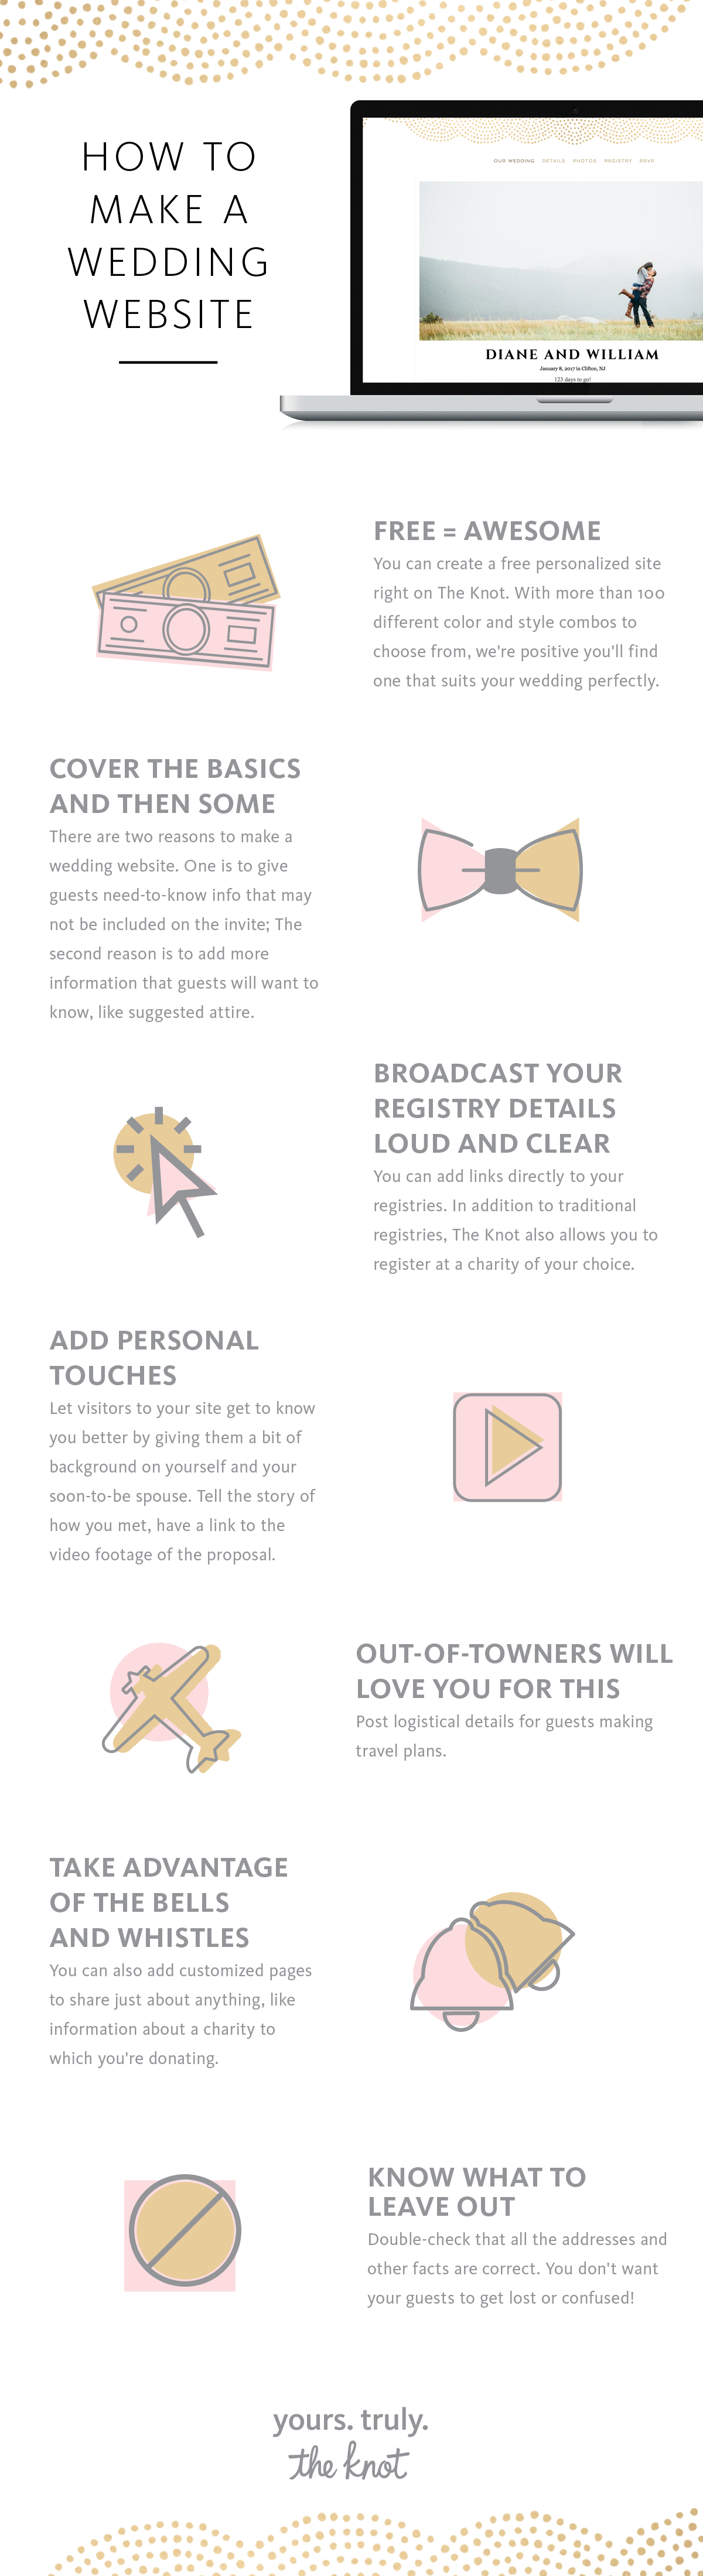 the 8 dos and donts of wedding websites wedding website